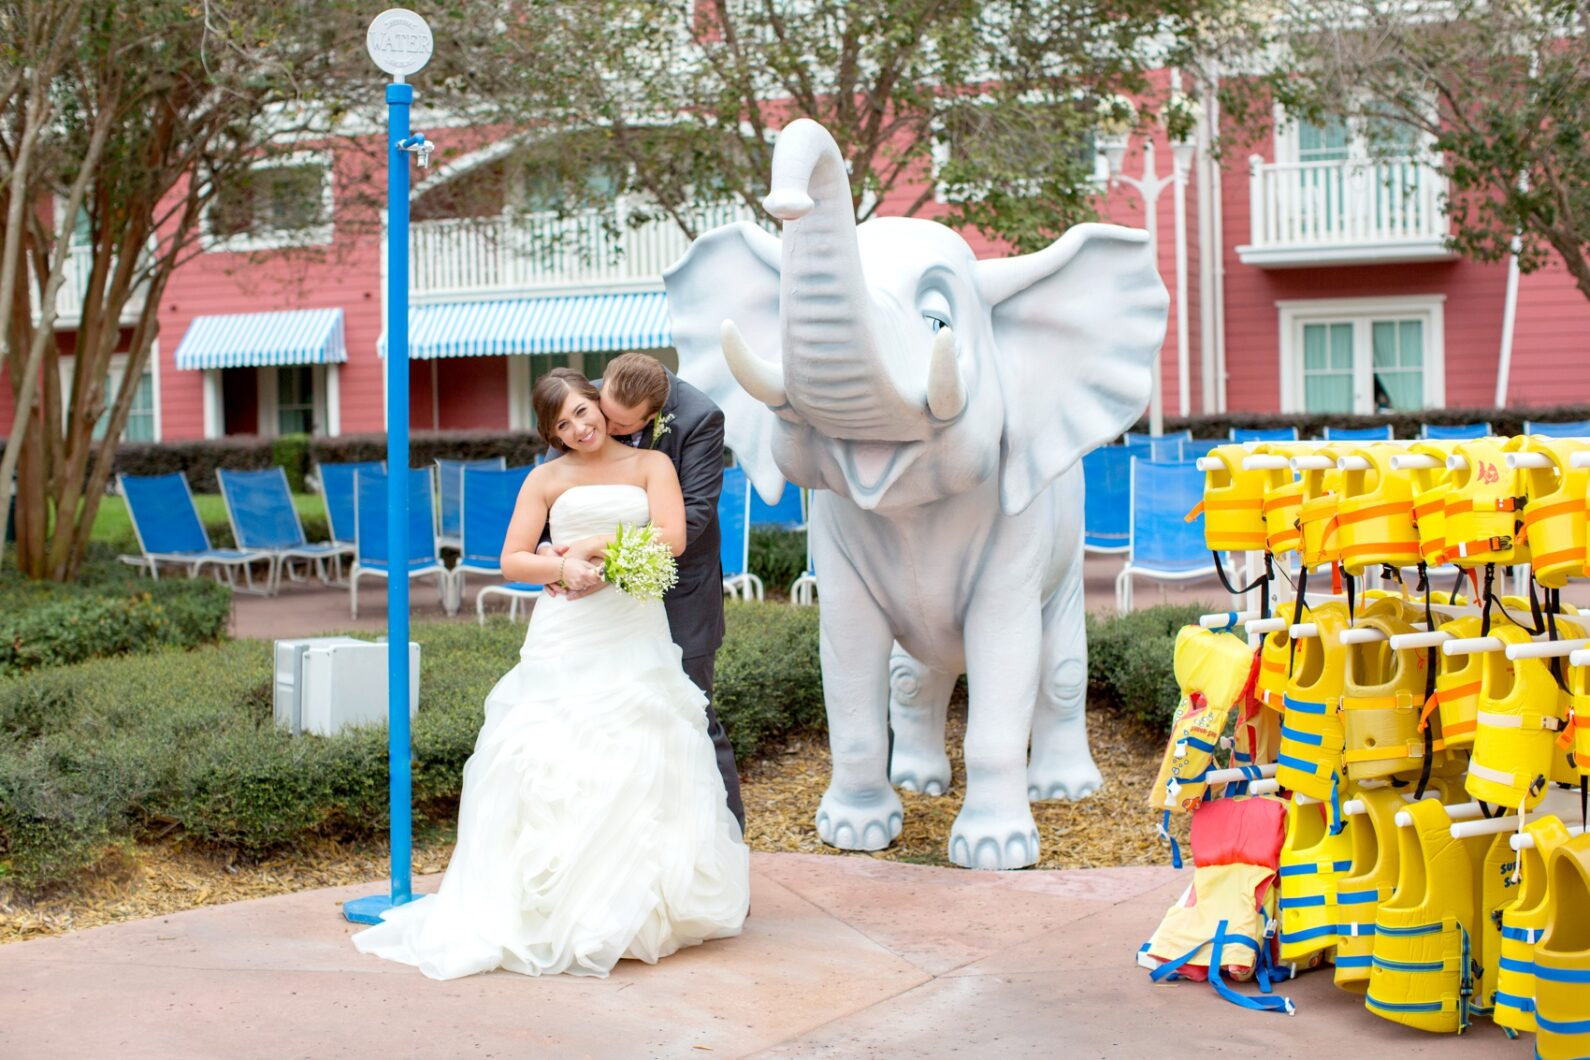 Disney World wedding photos by Mikkel Paige Photography, at Board Walk Hotel.